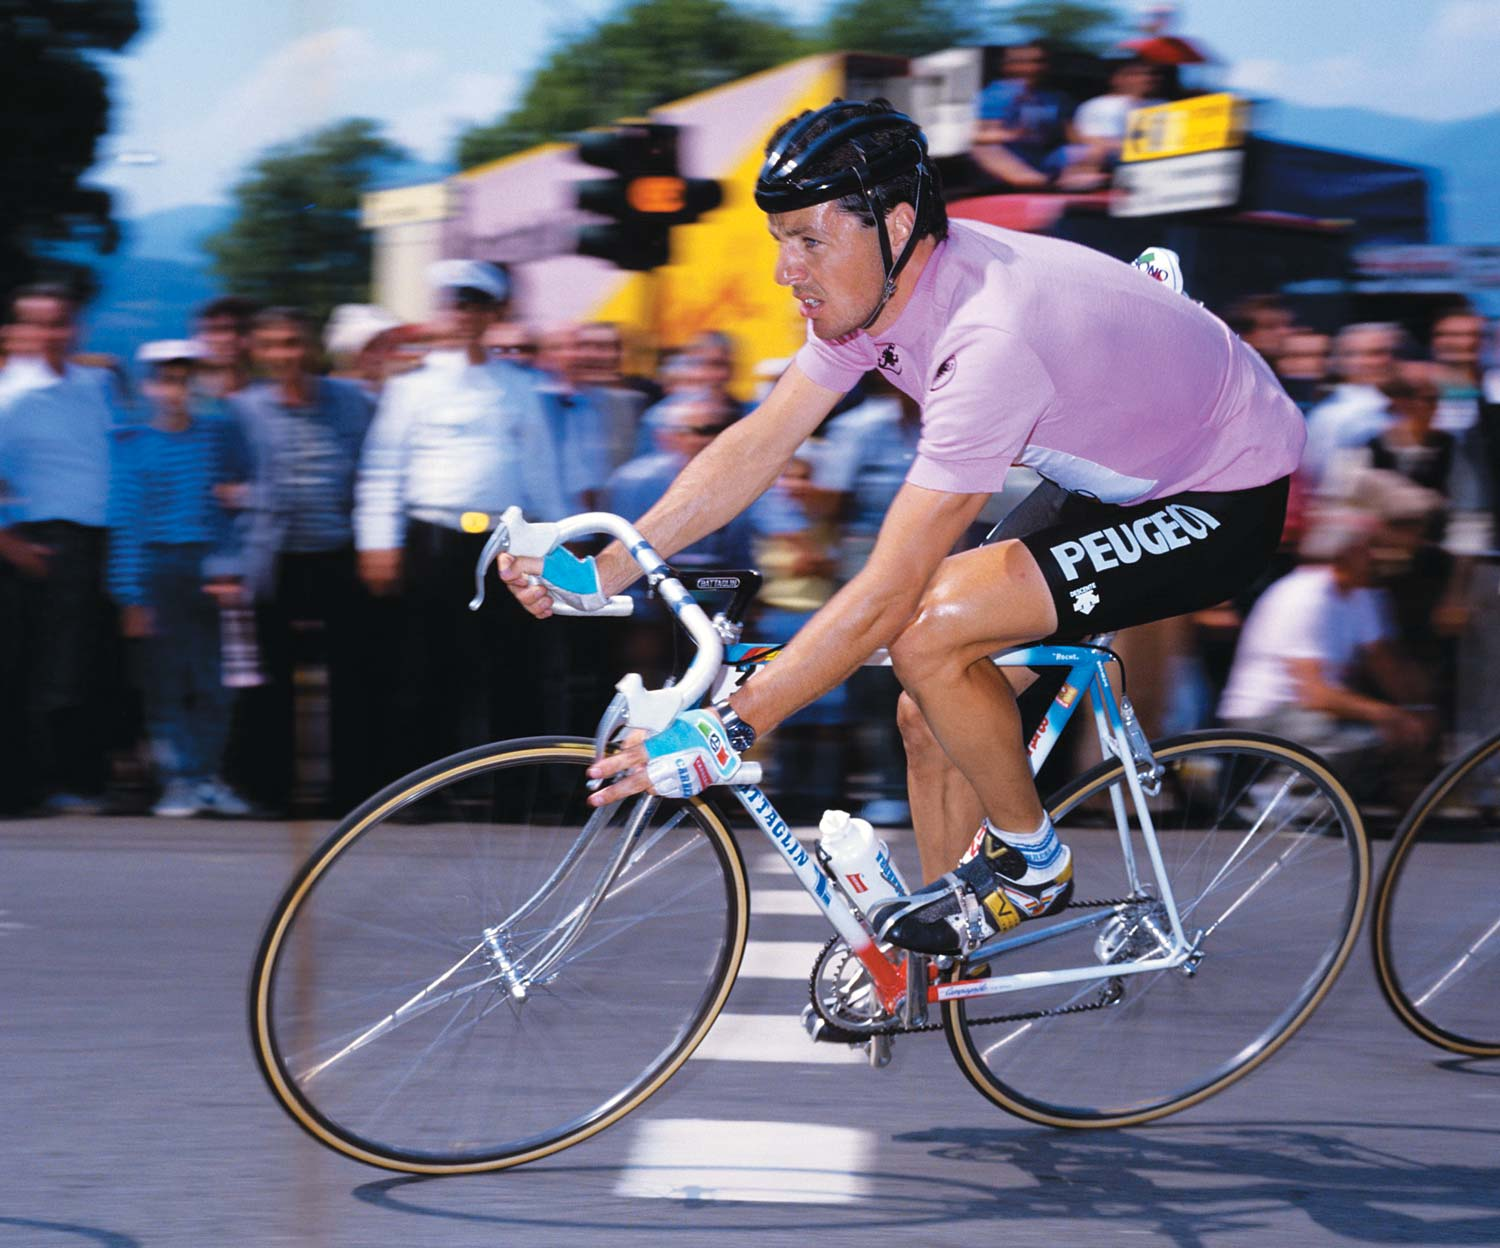 The Giro d'Italia 2018 enters the final week ... Stephen Roche leads the 1987 edition